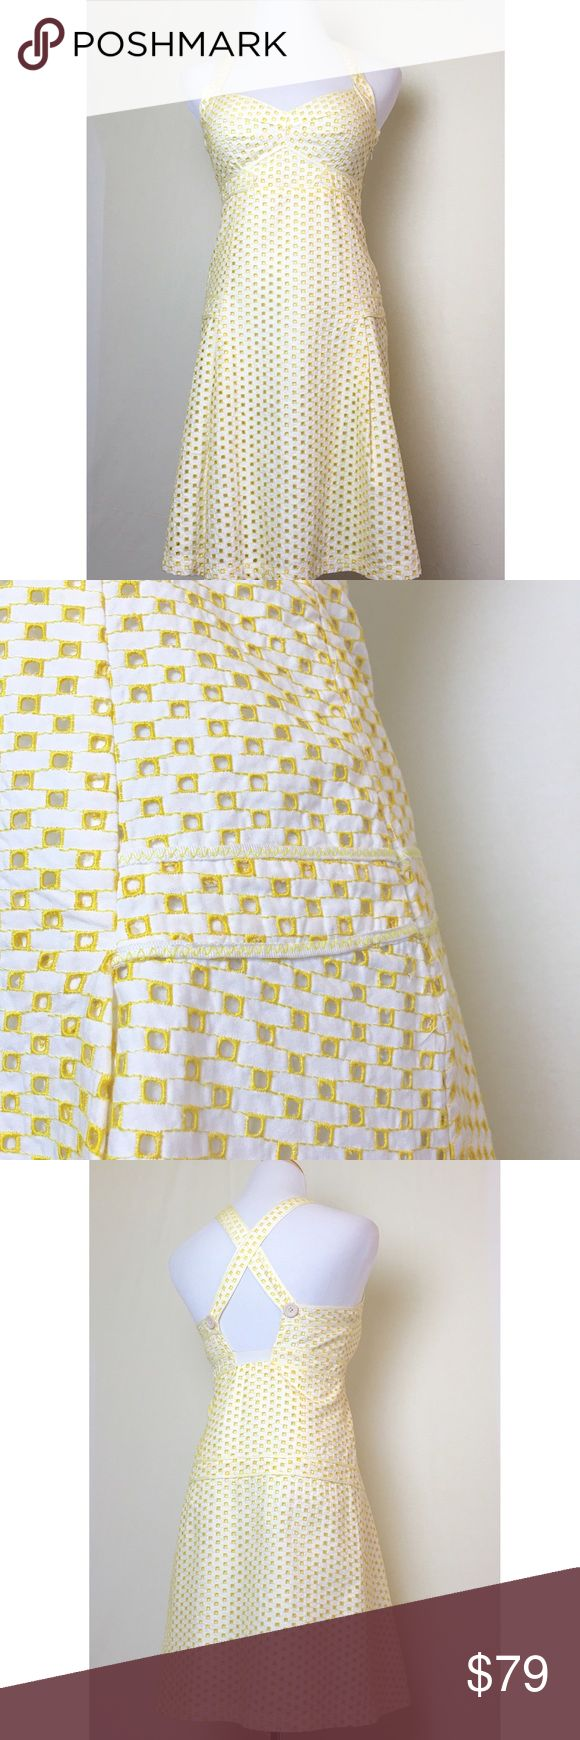 Gorgeous Cynthia Steffe pin up dress White and yellow retro style dress with square eyelet pattern. Sweetheart neckline. Straps cross in back with buttons. Hidden side zip. Fully lined. Like new. Cynthia Steffe Dresses